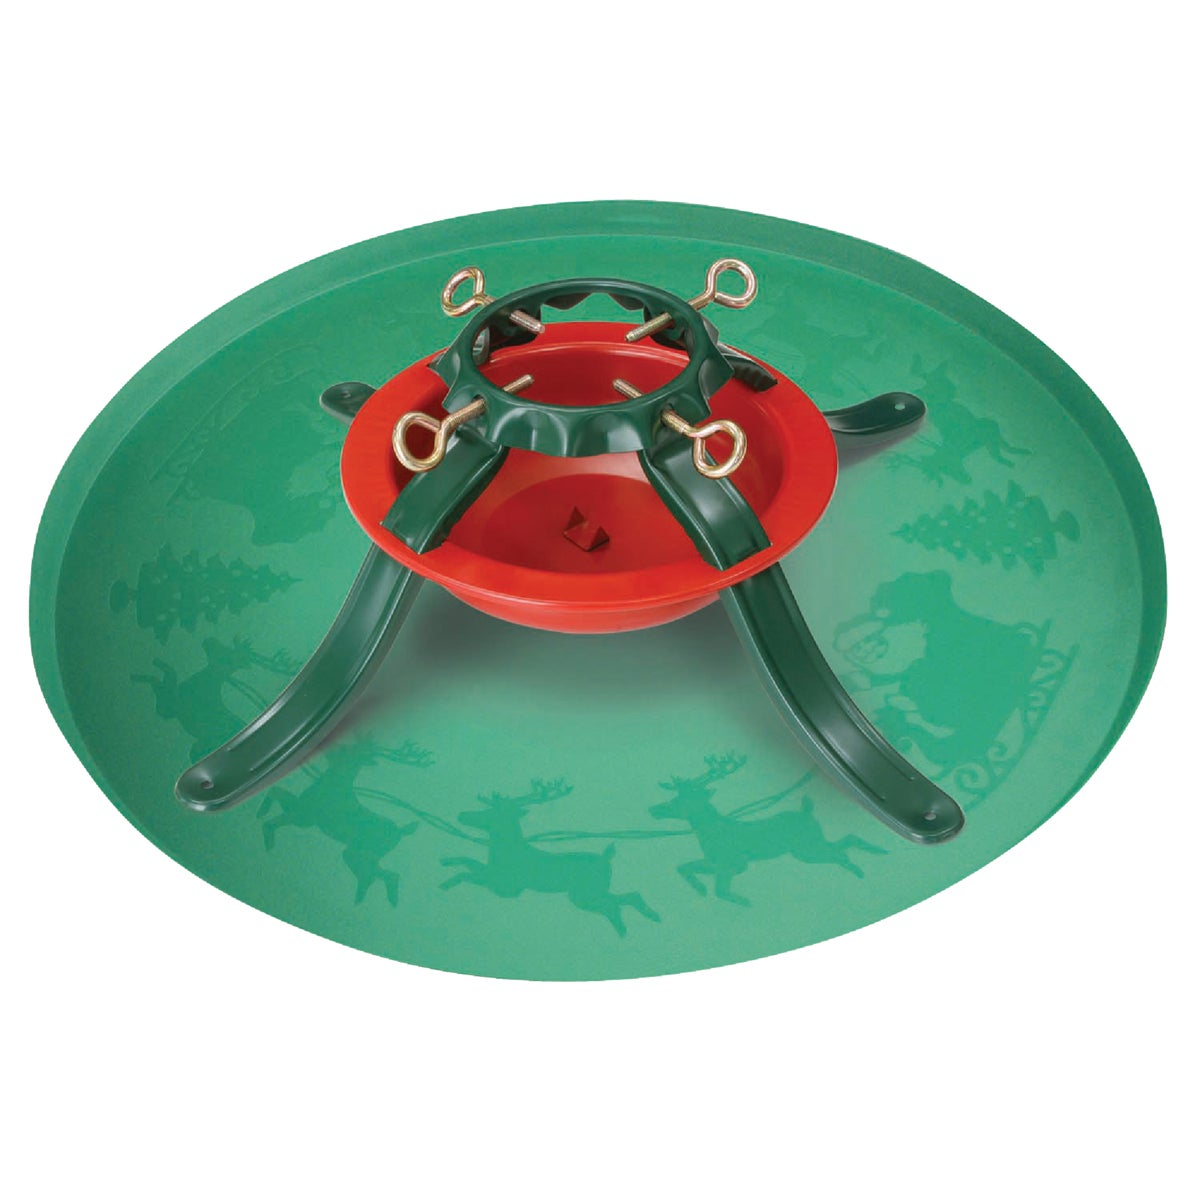 Jack Post/Chr-Dom TREE STAND TRAY XTRA